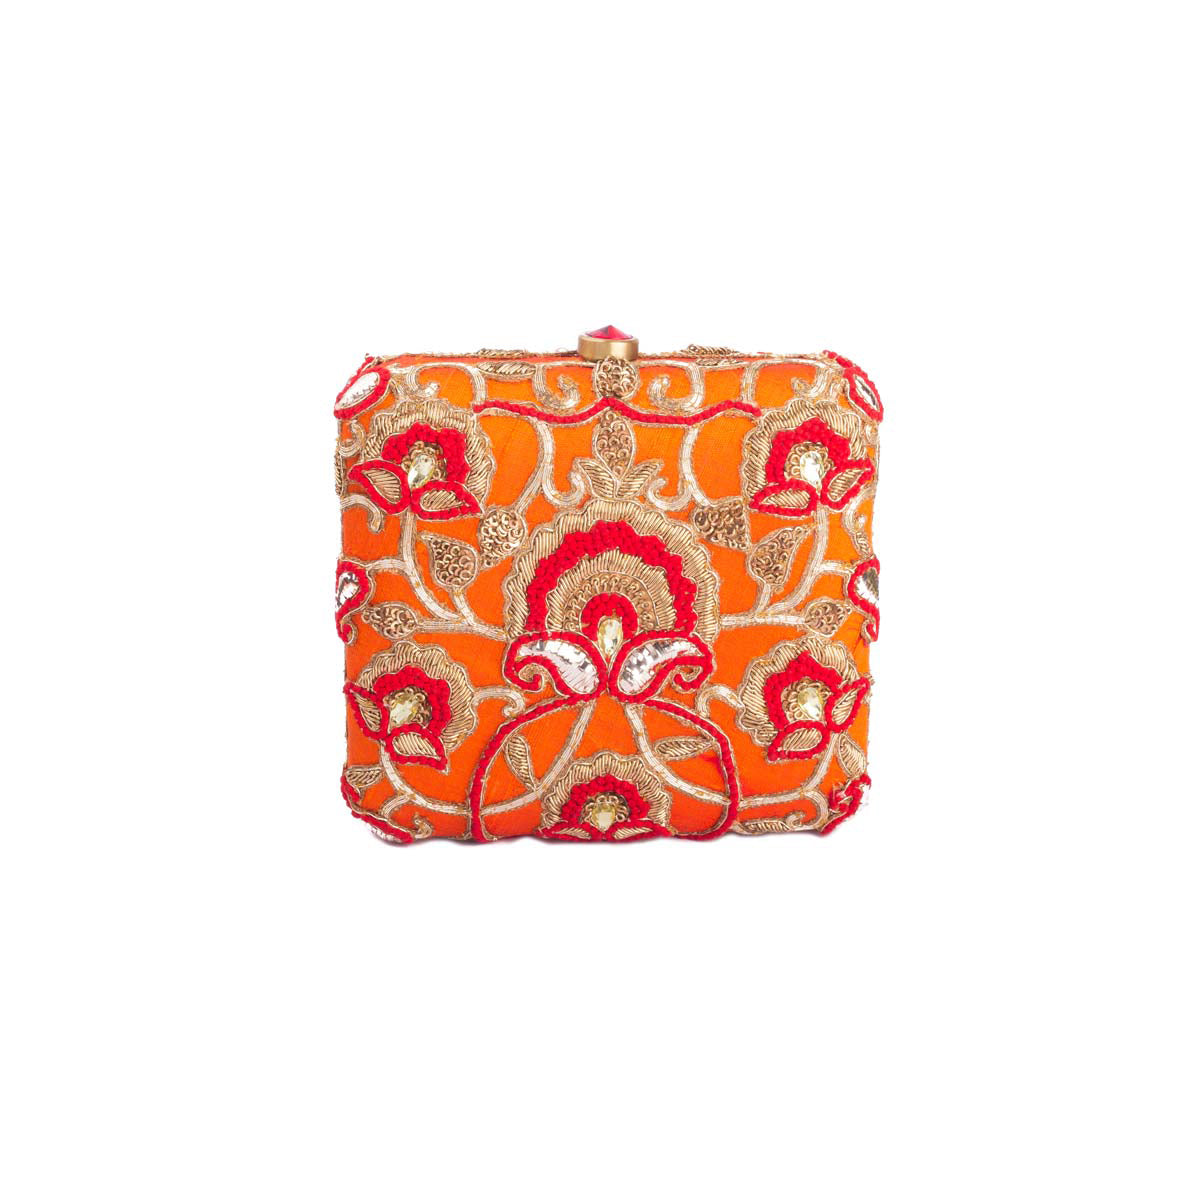 There's tons to brag about our Lovetobags! This deep orange clutch with red threadwork, zardosi embroidery and mukesh work detailing strikes all the right silhouettes at once.